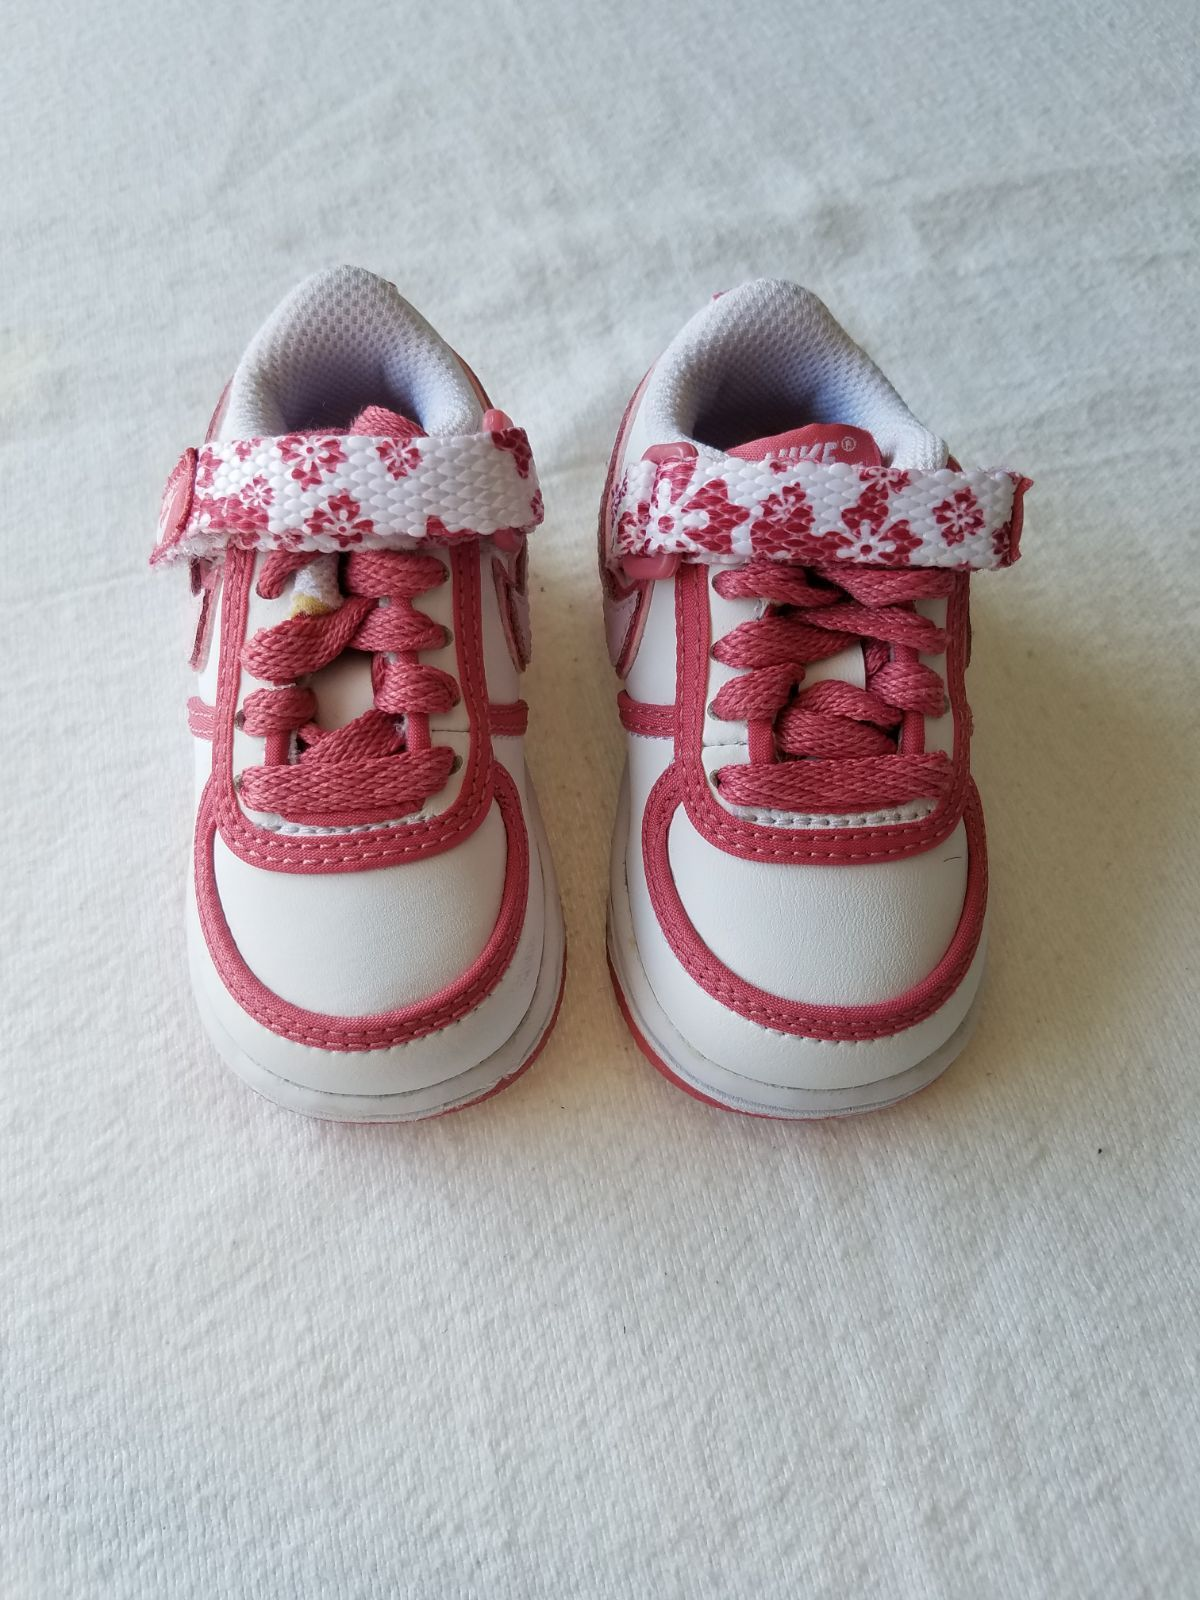 Nike baby girl pink and white shoes